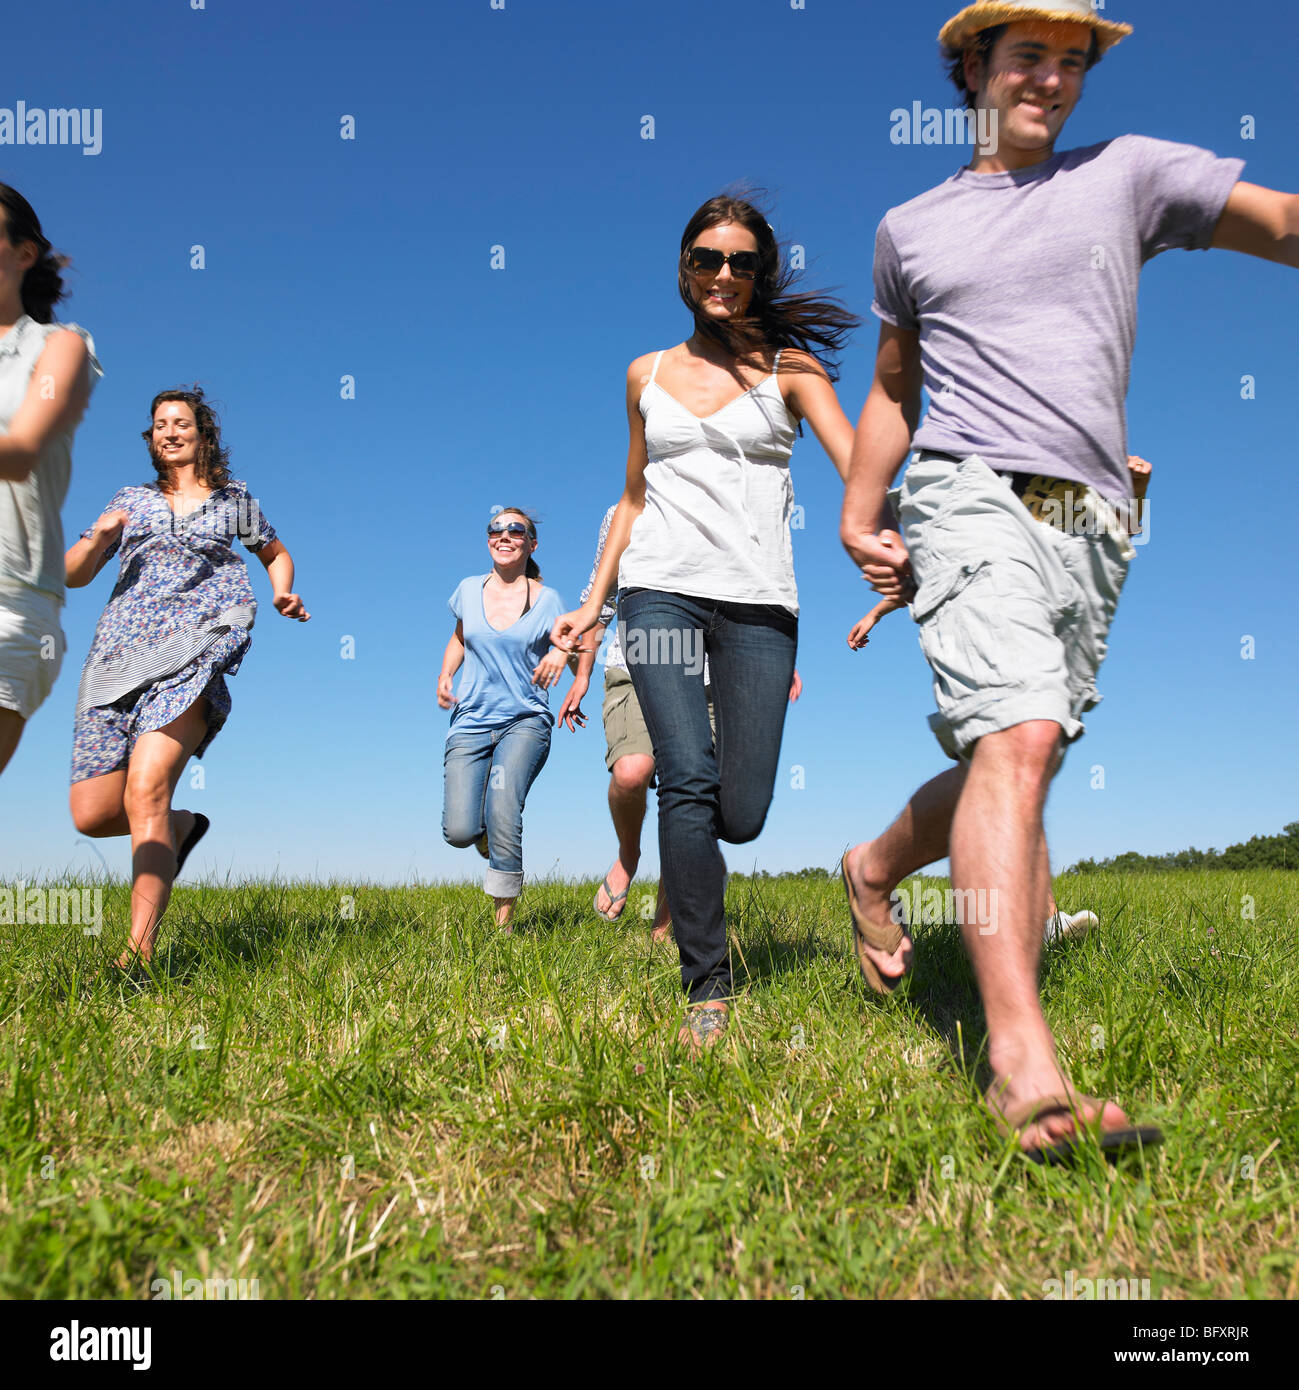 group of young people running in field - Stock Image